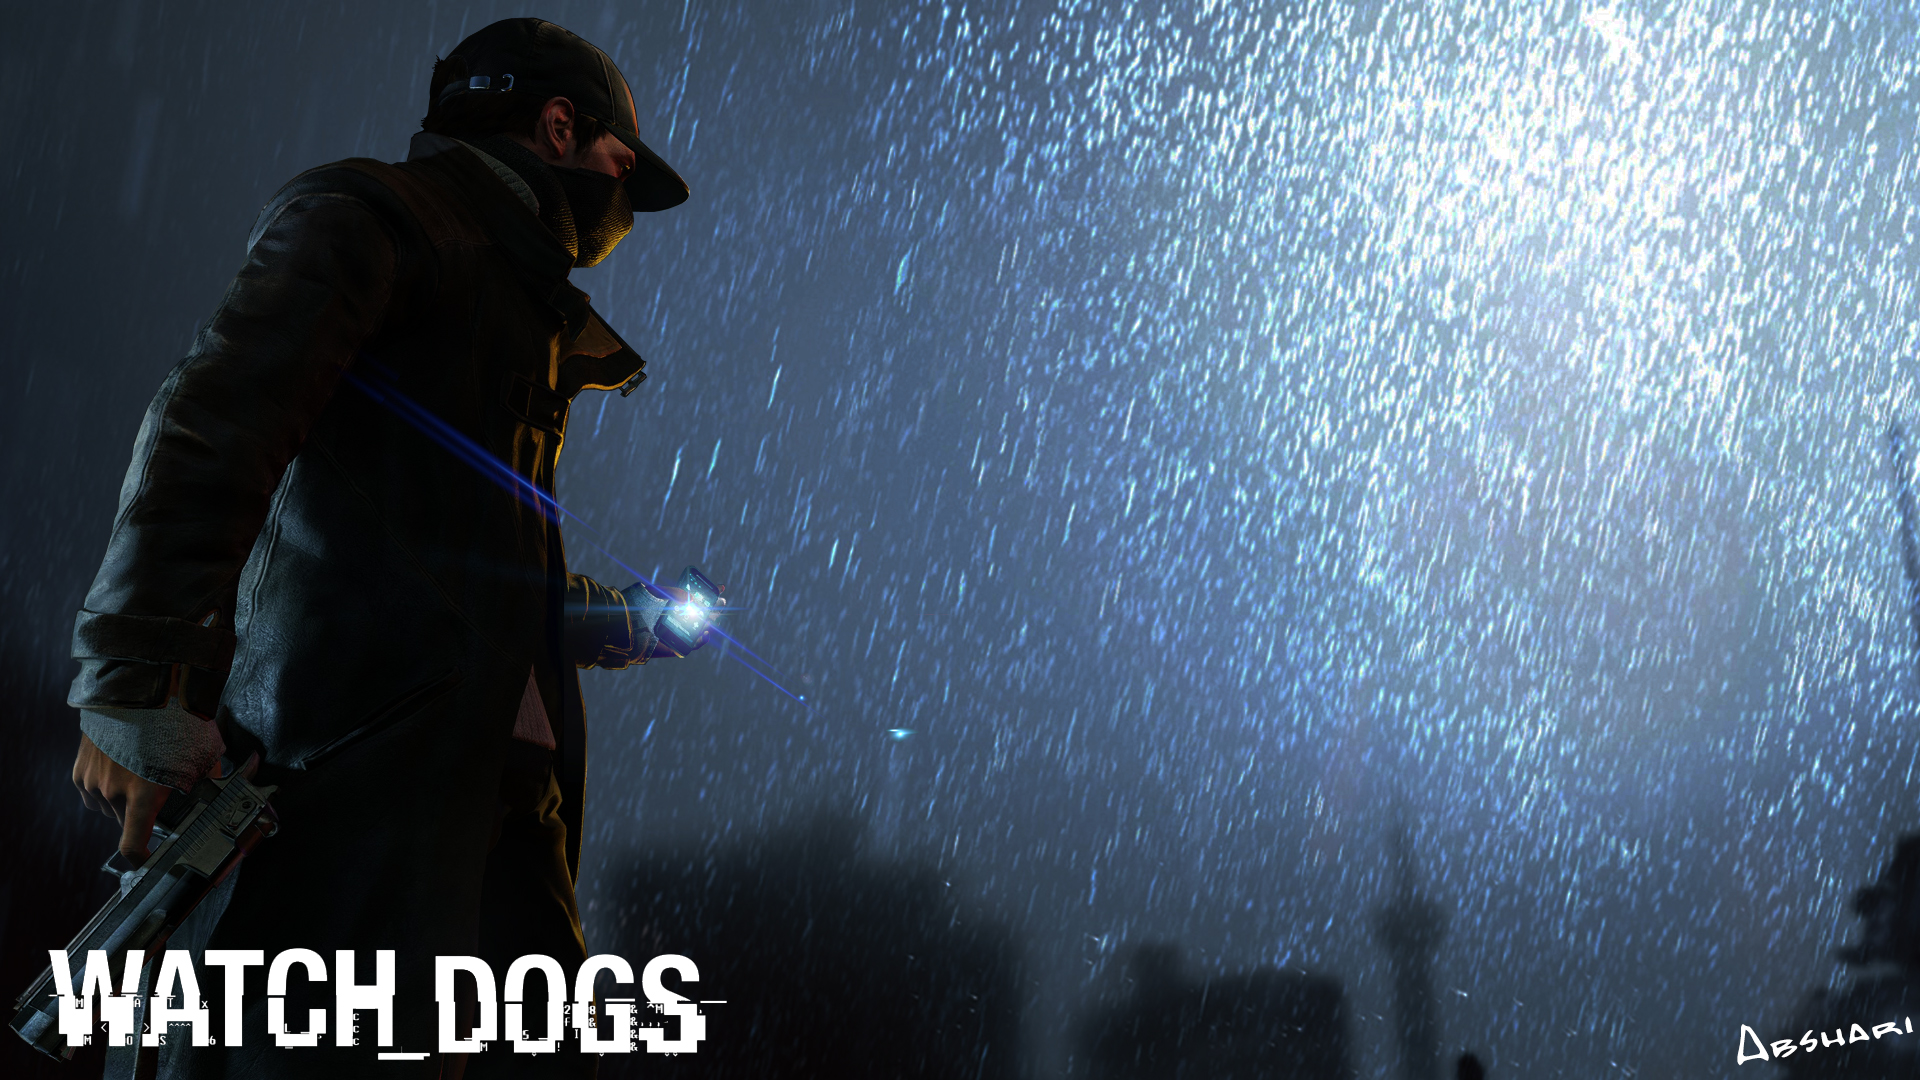 Watch-Dogs-Wallpaper-1080p